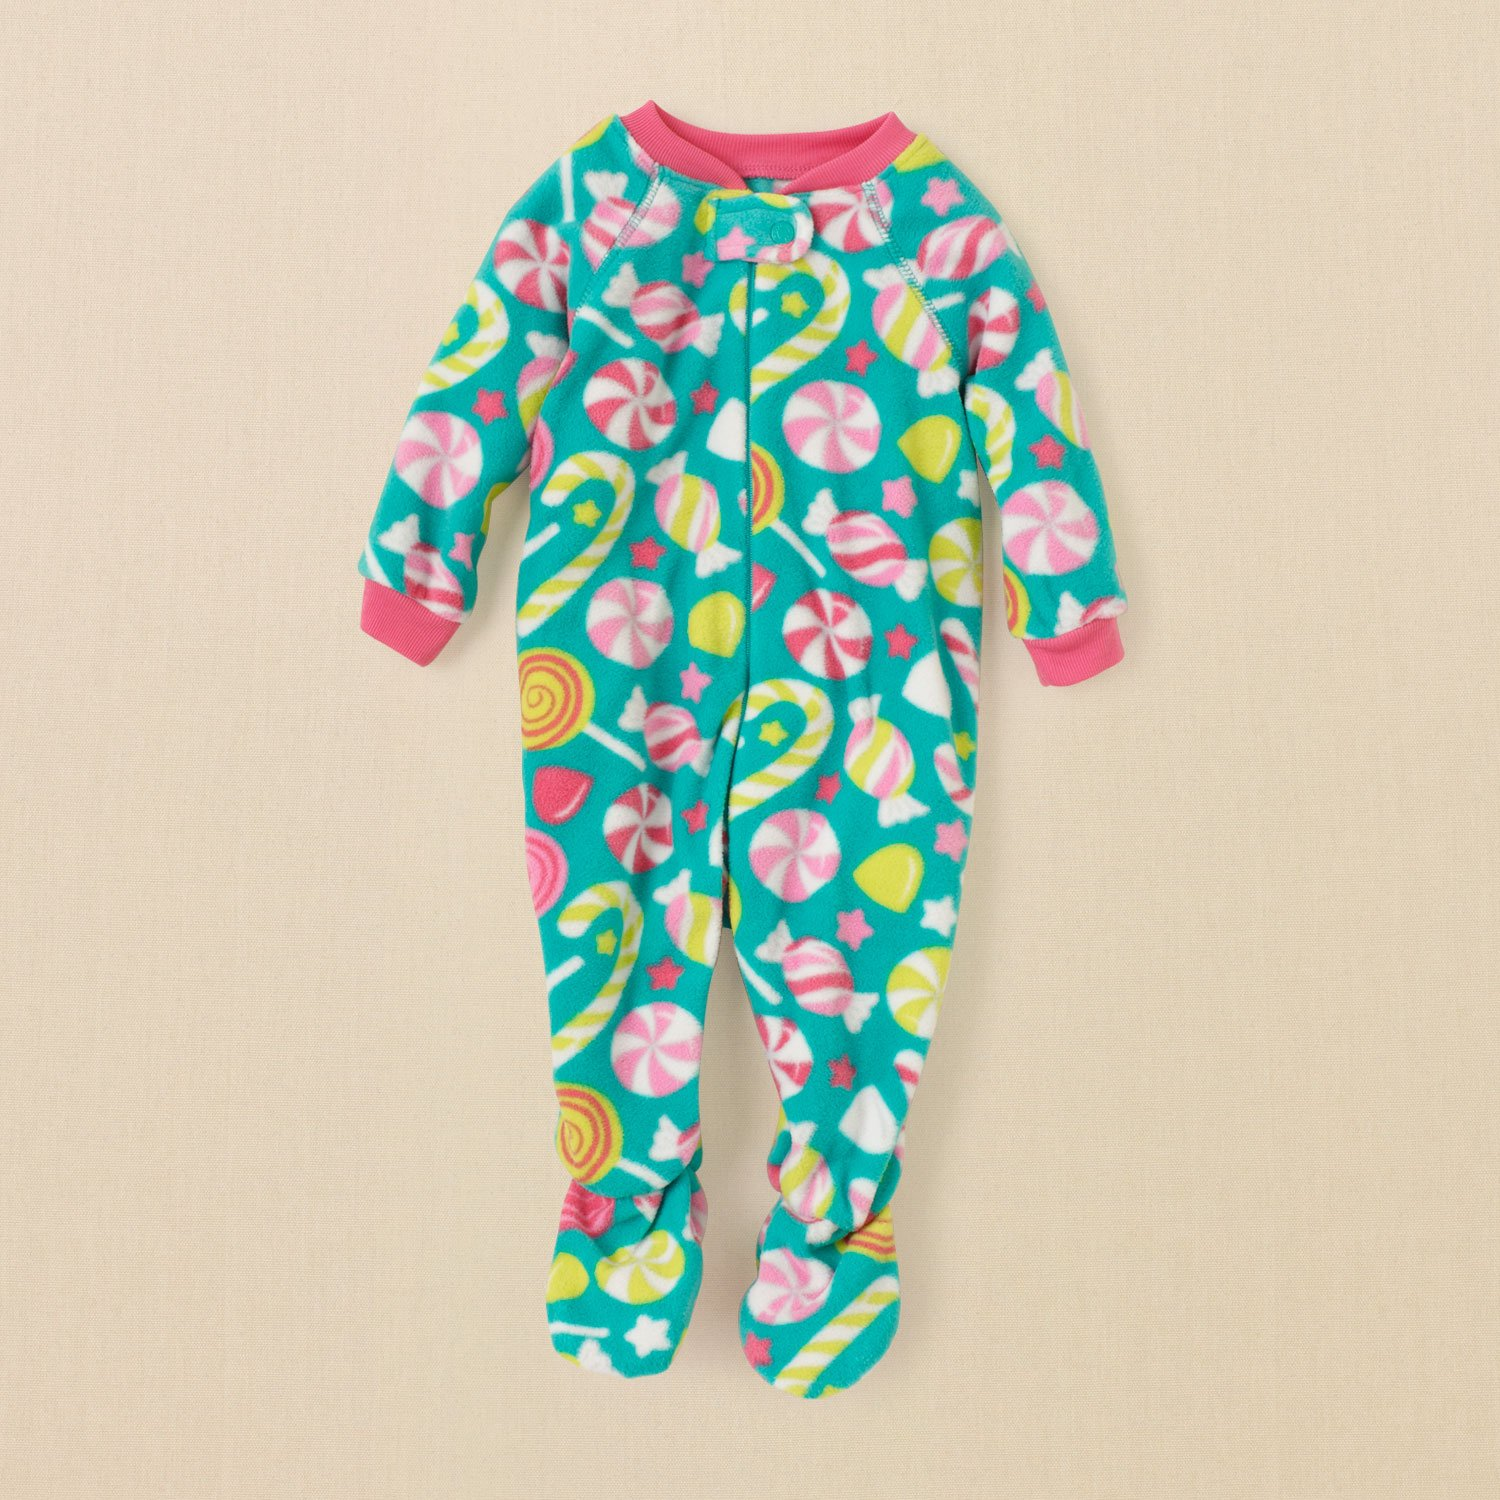 THE CHILDREN'S PLACE CANDY Girl's 3T Fleece Footed Pajama Sleeper, NEW